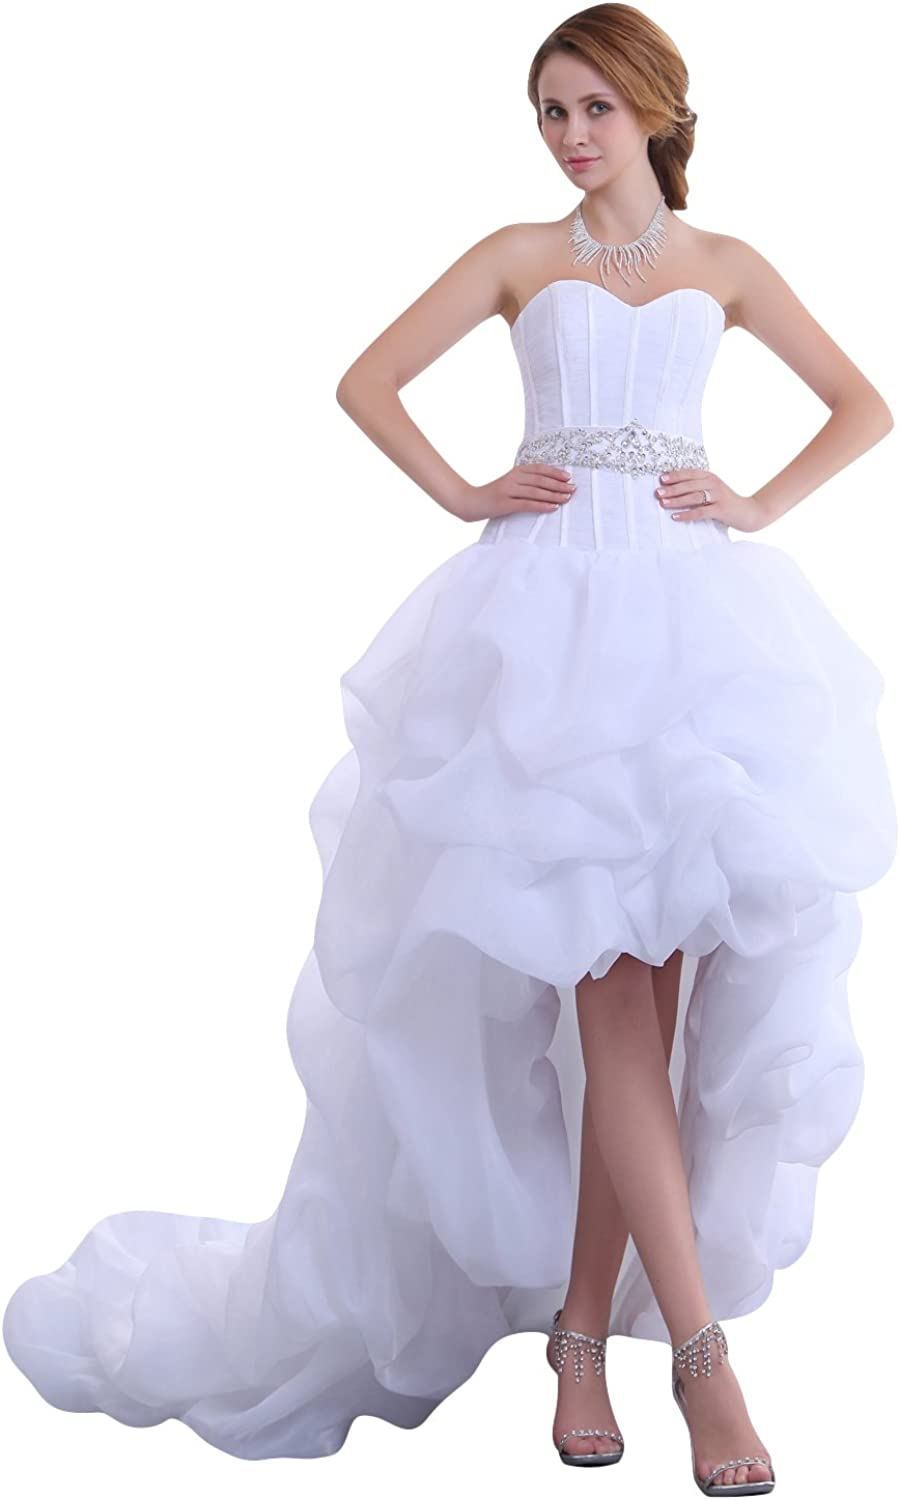 Vampal White Sweetheart Organza Wedding Dress Short In Front With Long Train